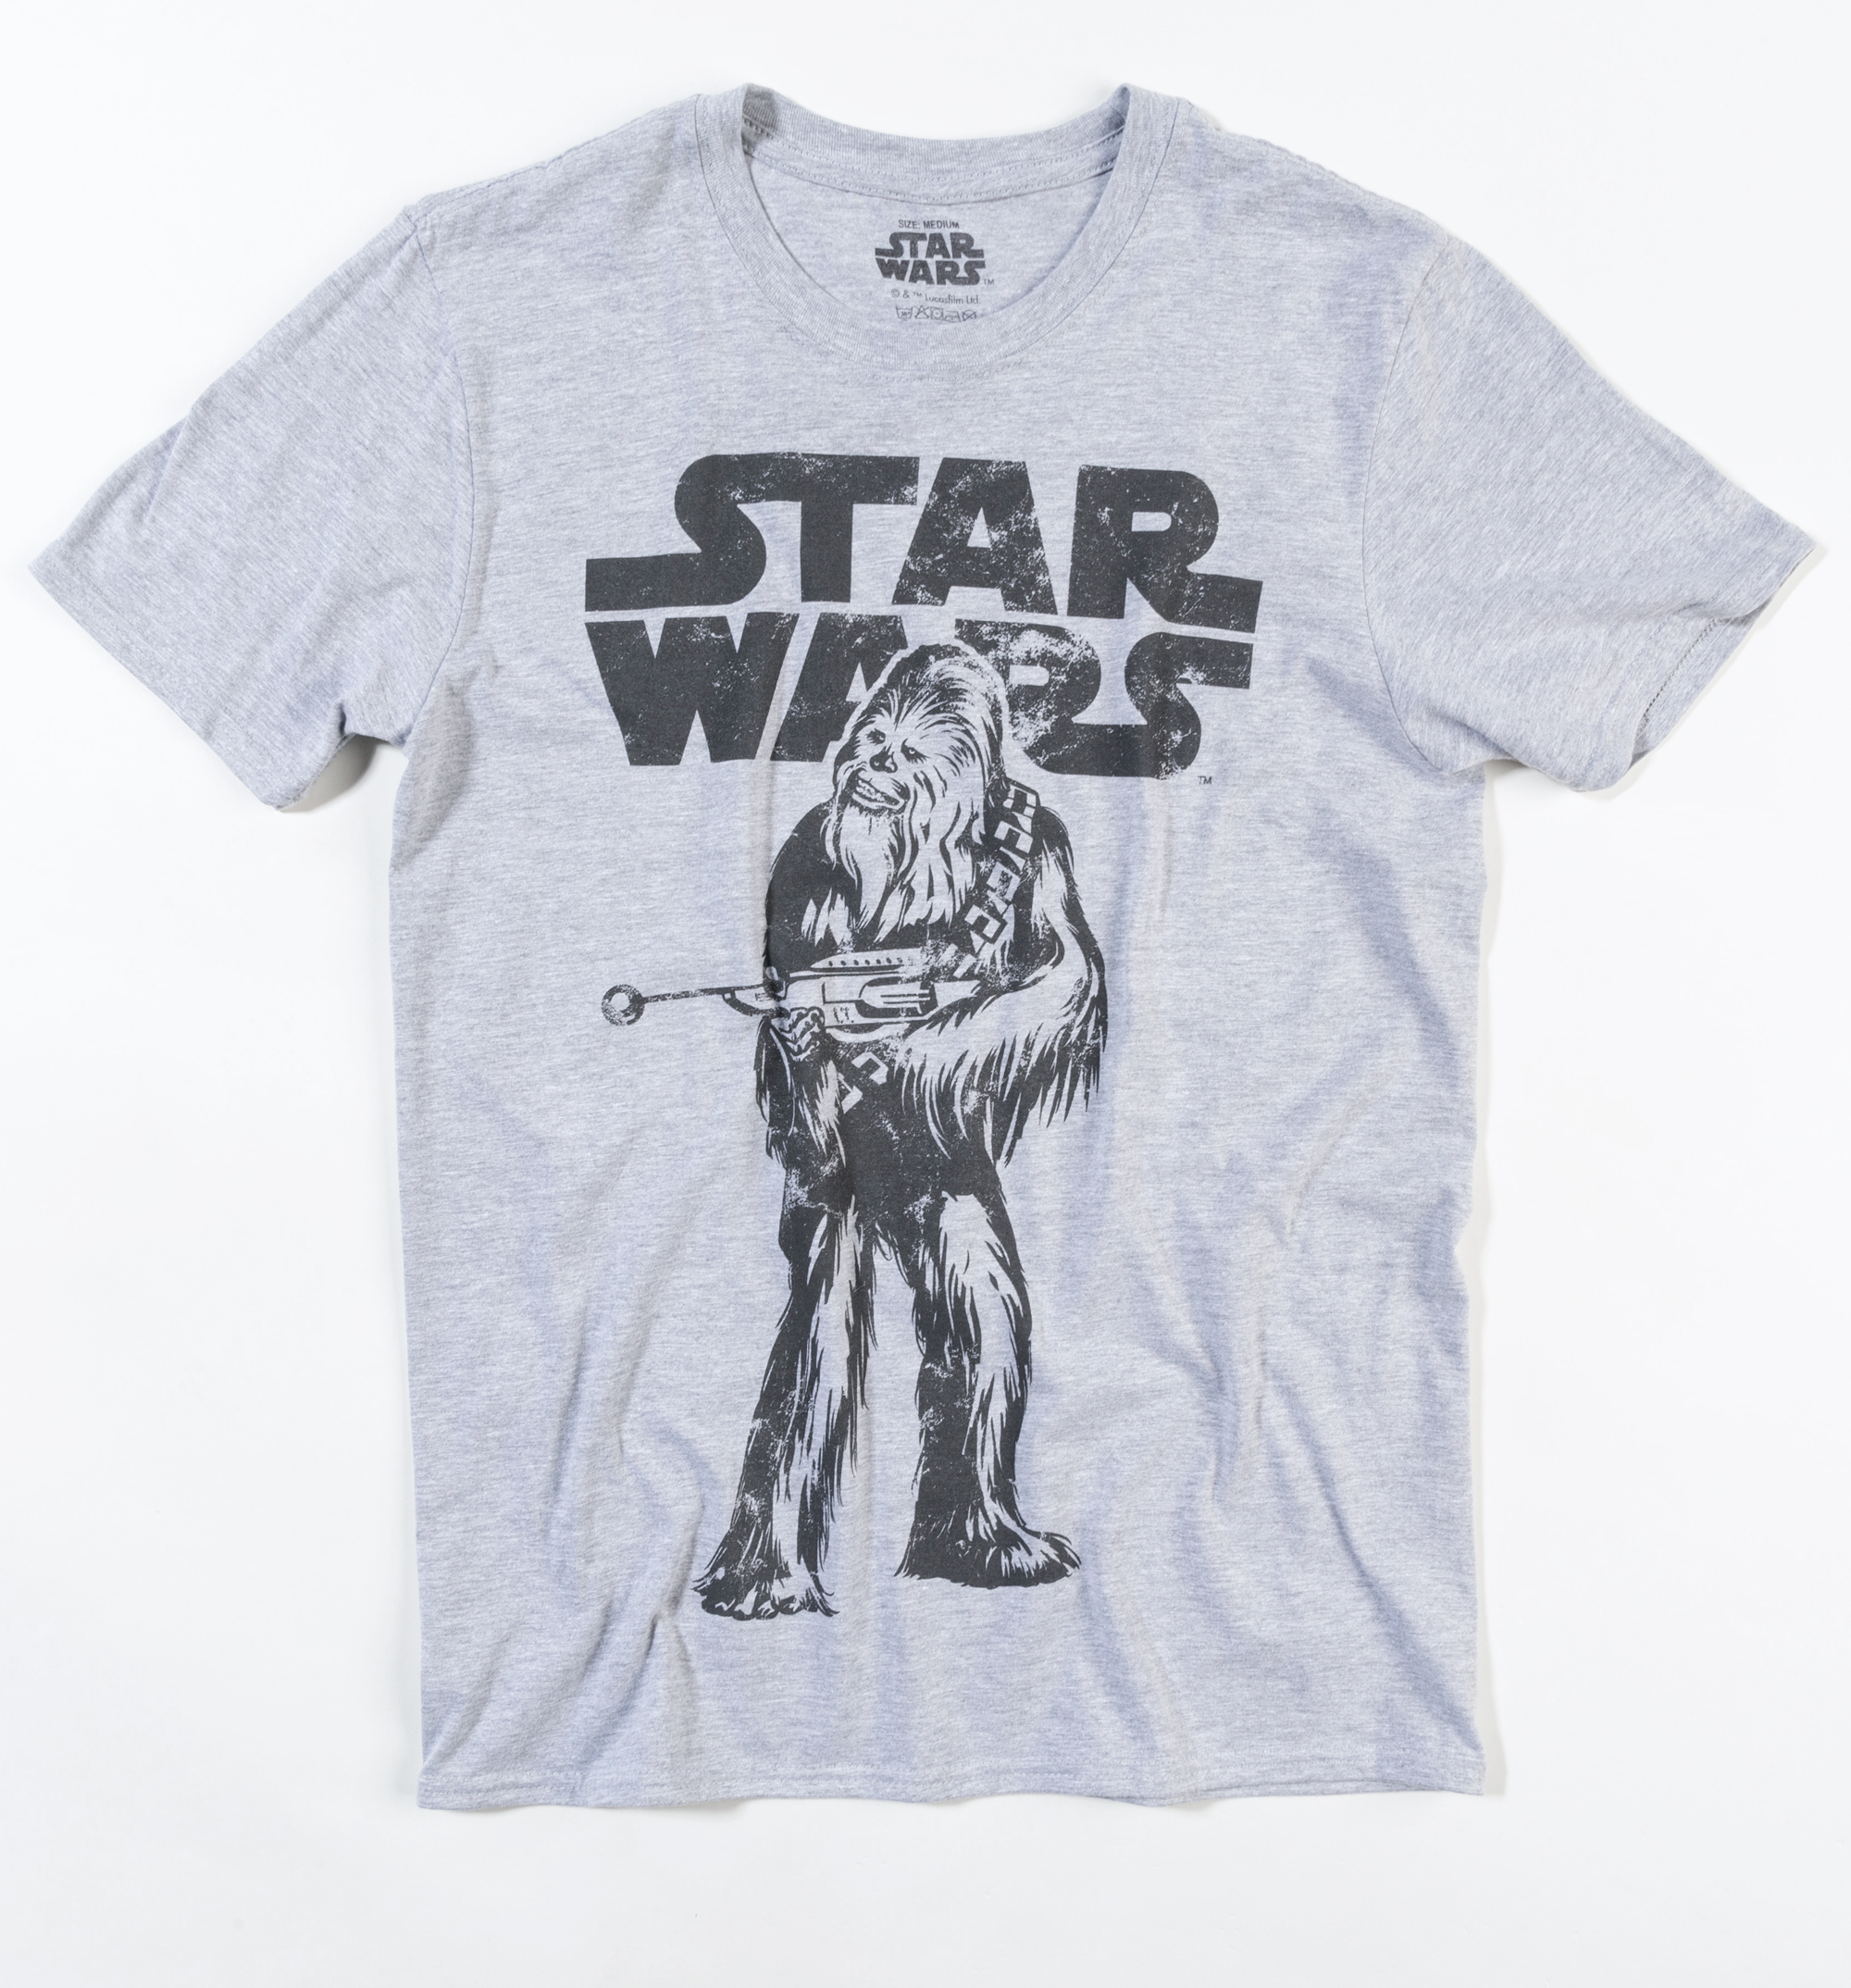 1d4cf0646 Men's Grey Marl Star Wars Distressed Chewbacca T-Shirt - Made from 90%  Cotton, 10% polyester - Soft feel, lightweight tee with a slim fit